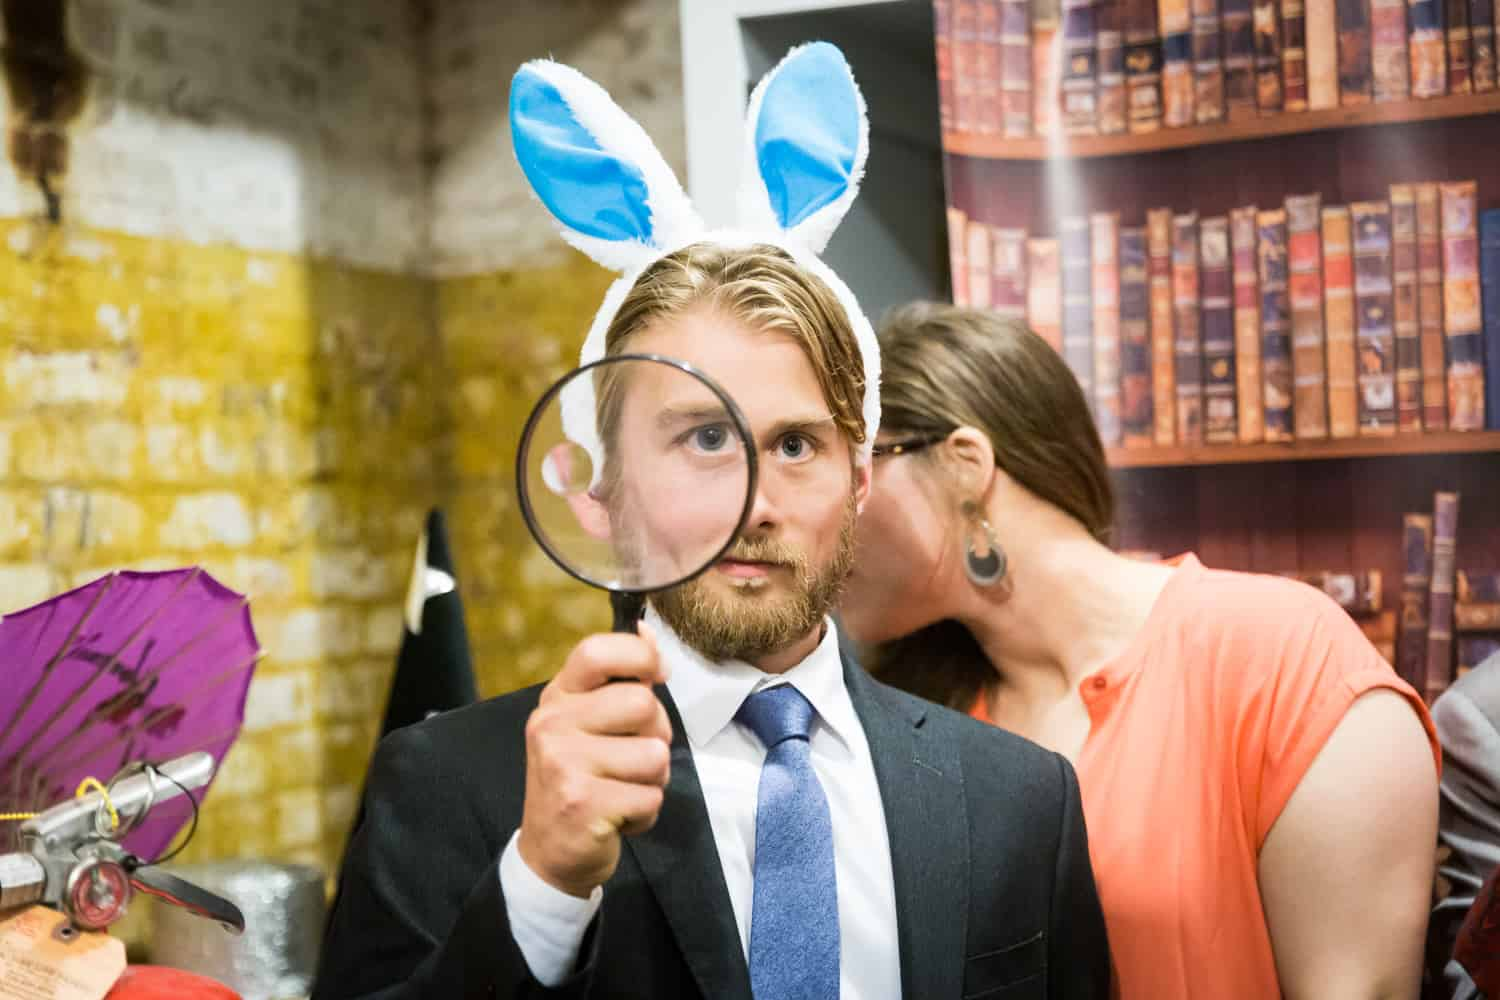 Man wearing bunny ears and holding a magnifying glass in a DIY photobooth